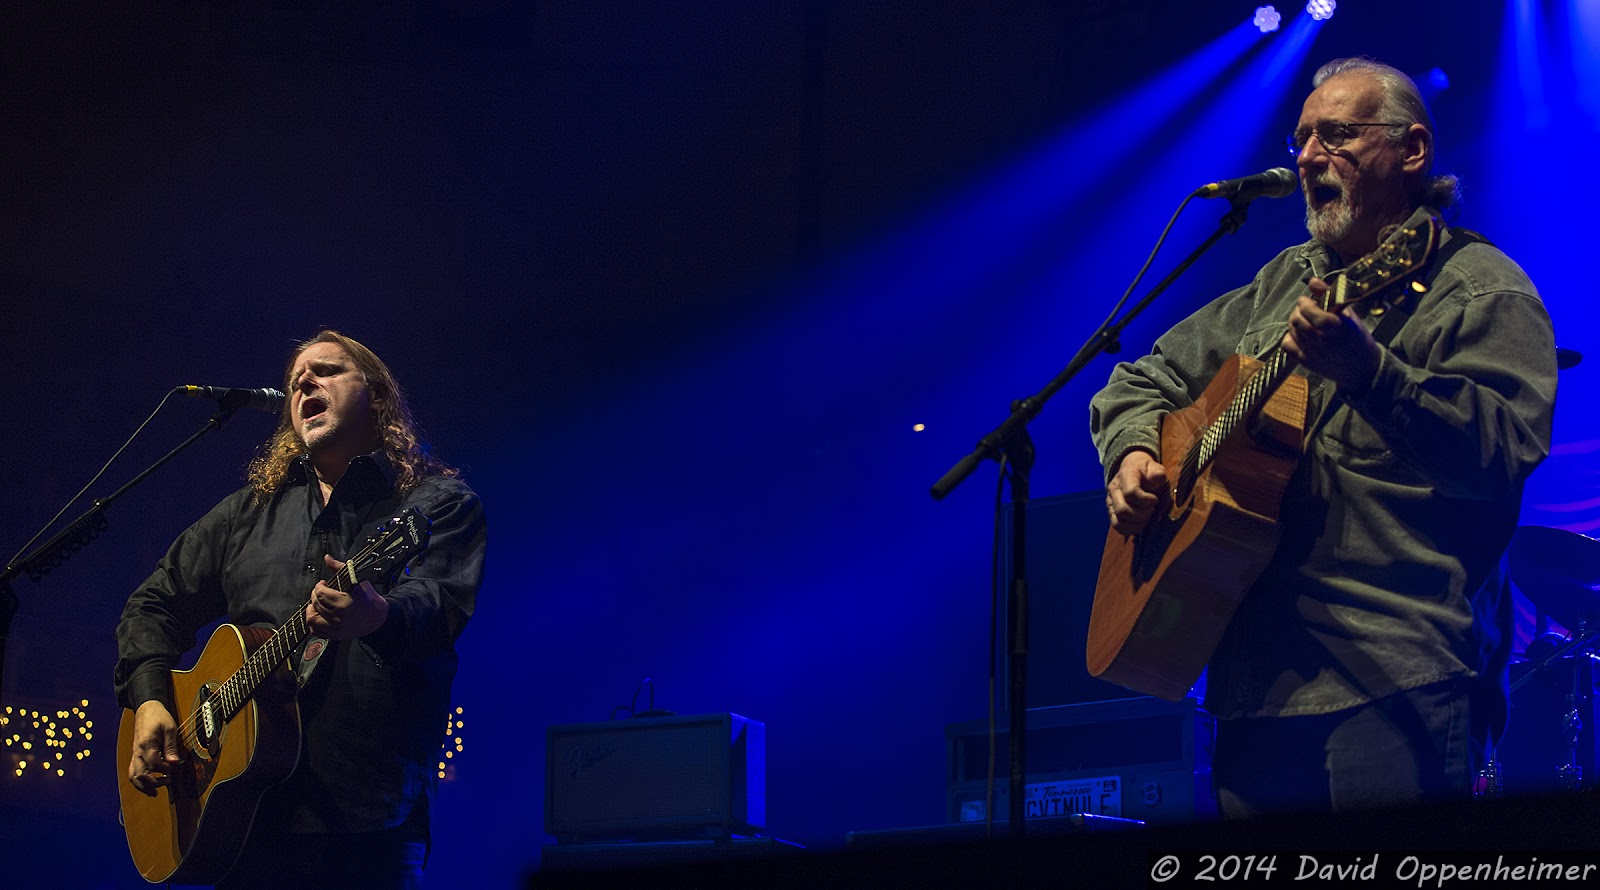 Warren Haynes & Ray Sisk